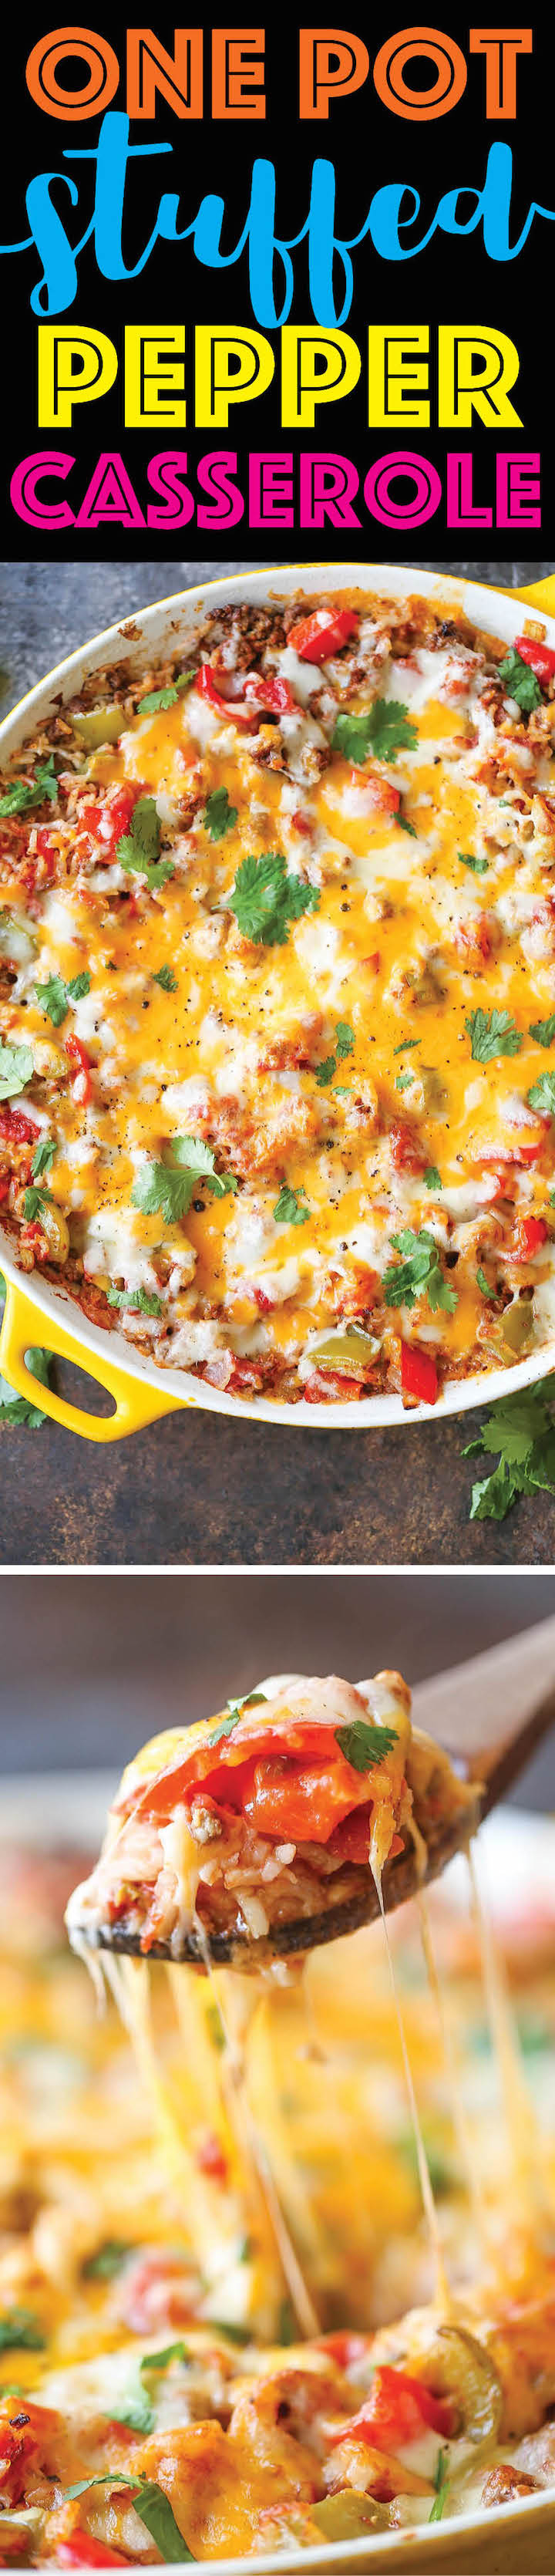 One Pot Stuffed Pepper Casserole - All the flavors of stuffed peppers without any of the fuss coming together in ONE PAN! So hearty, decadent and filling!